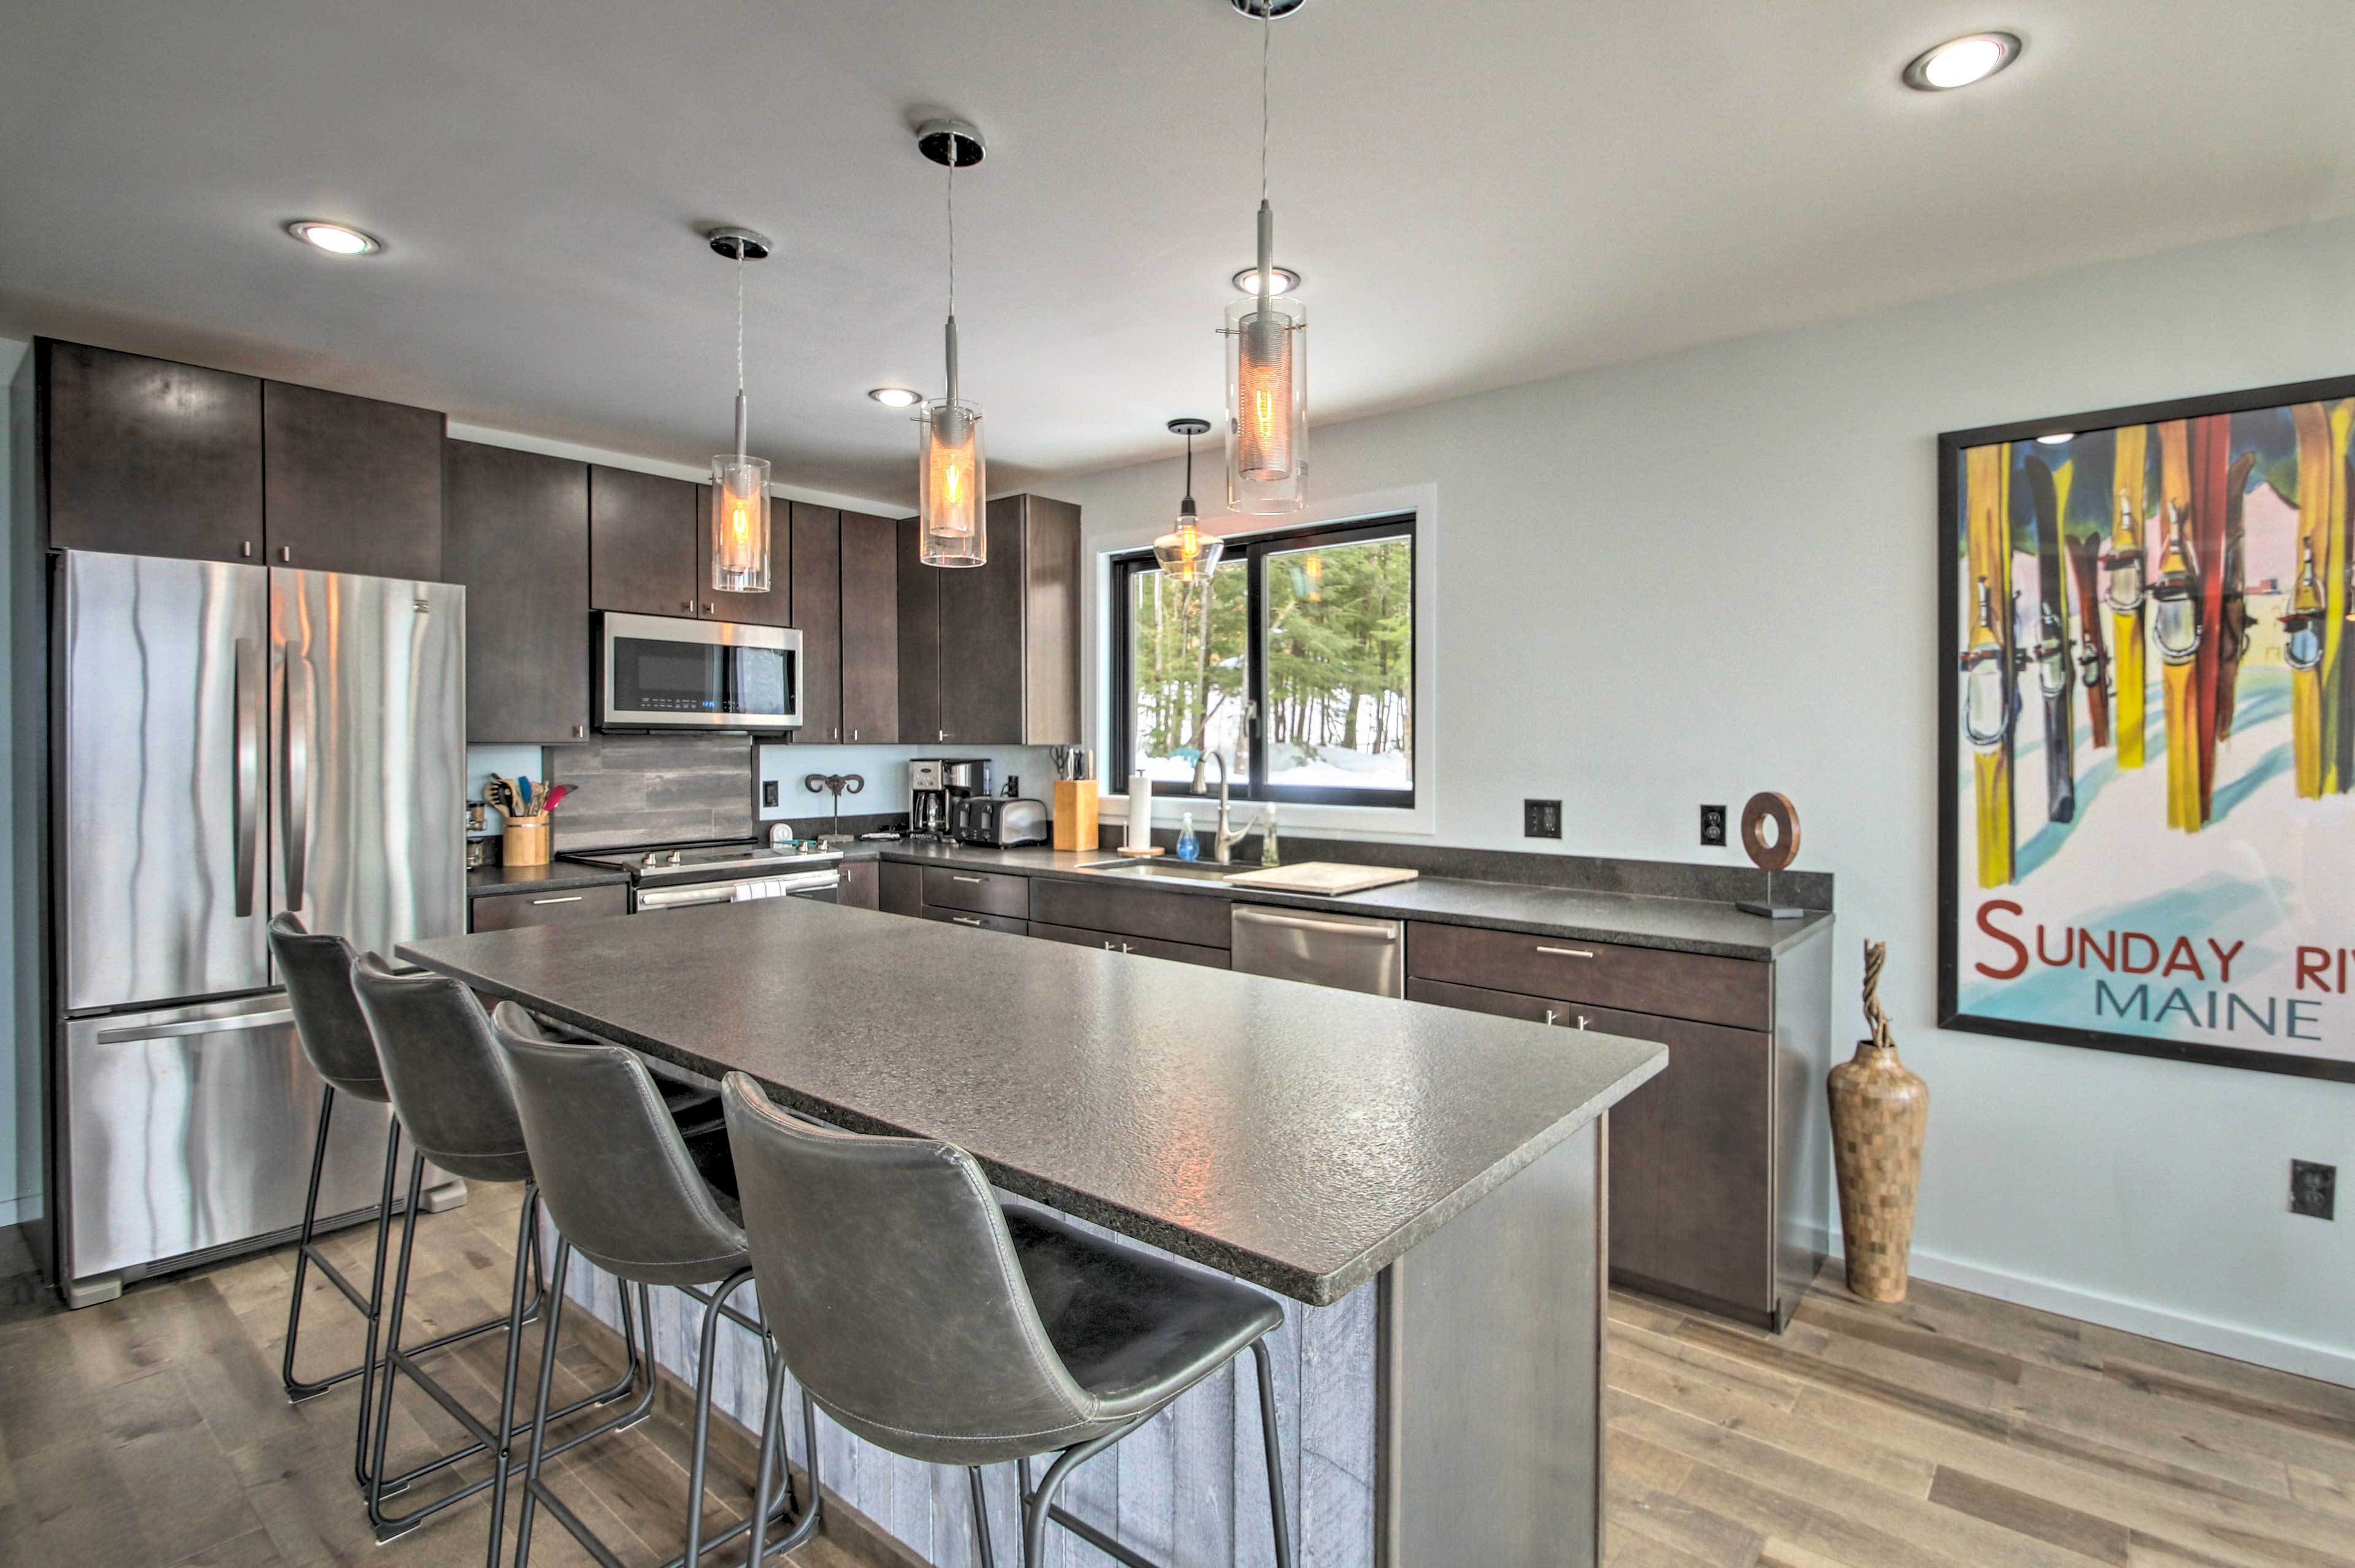 This home is ideal for groups of up to 10.